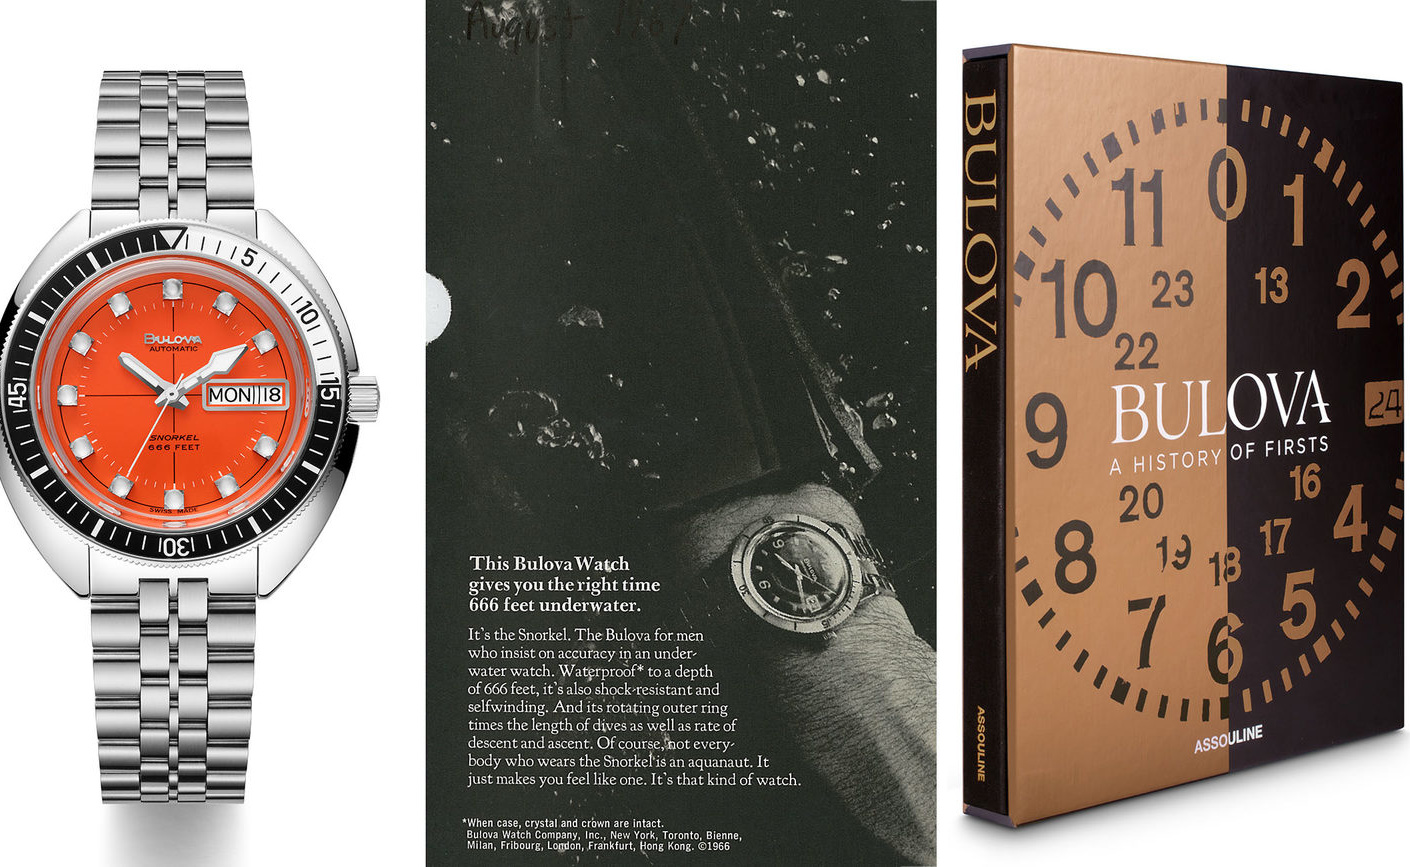 """Concours D Elegance >> 'BULOVA: A History of Firsts' Exclusive Excerpt – The Bulova 666 """"Devil Diver"""" 